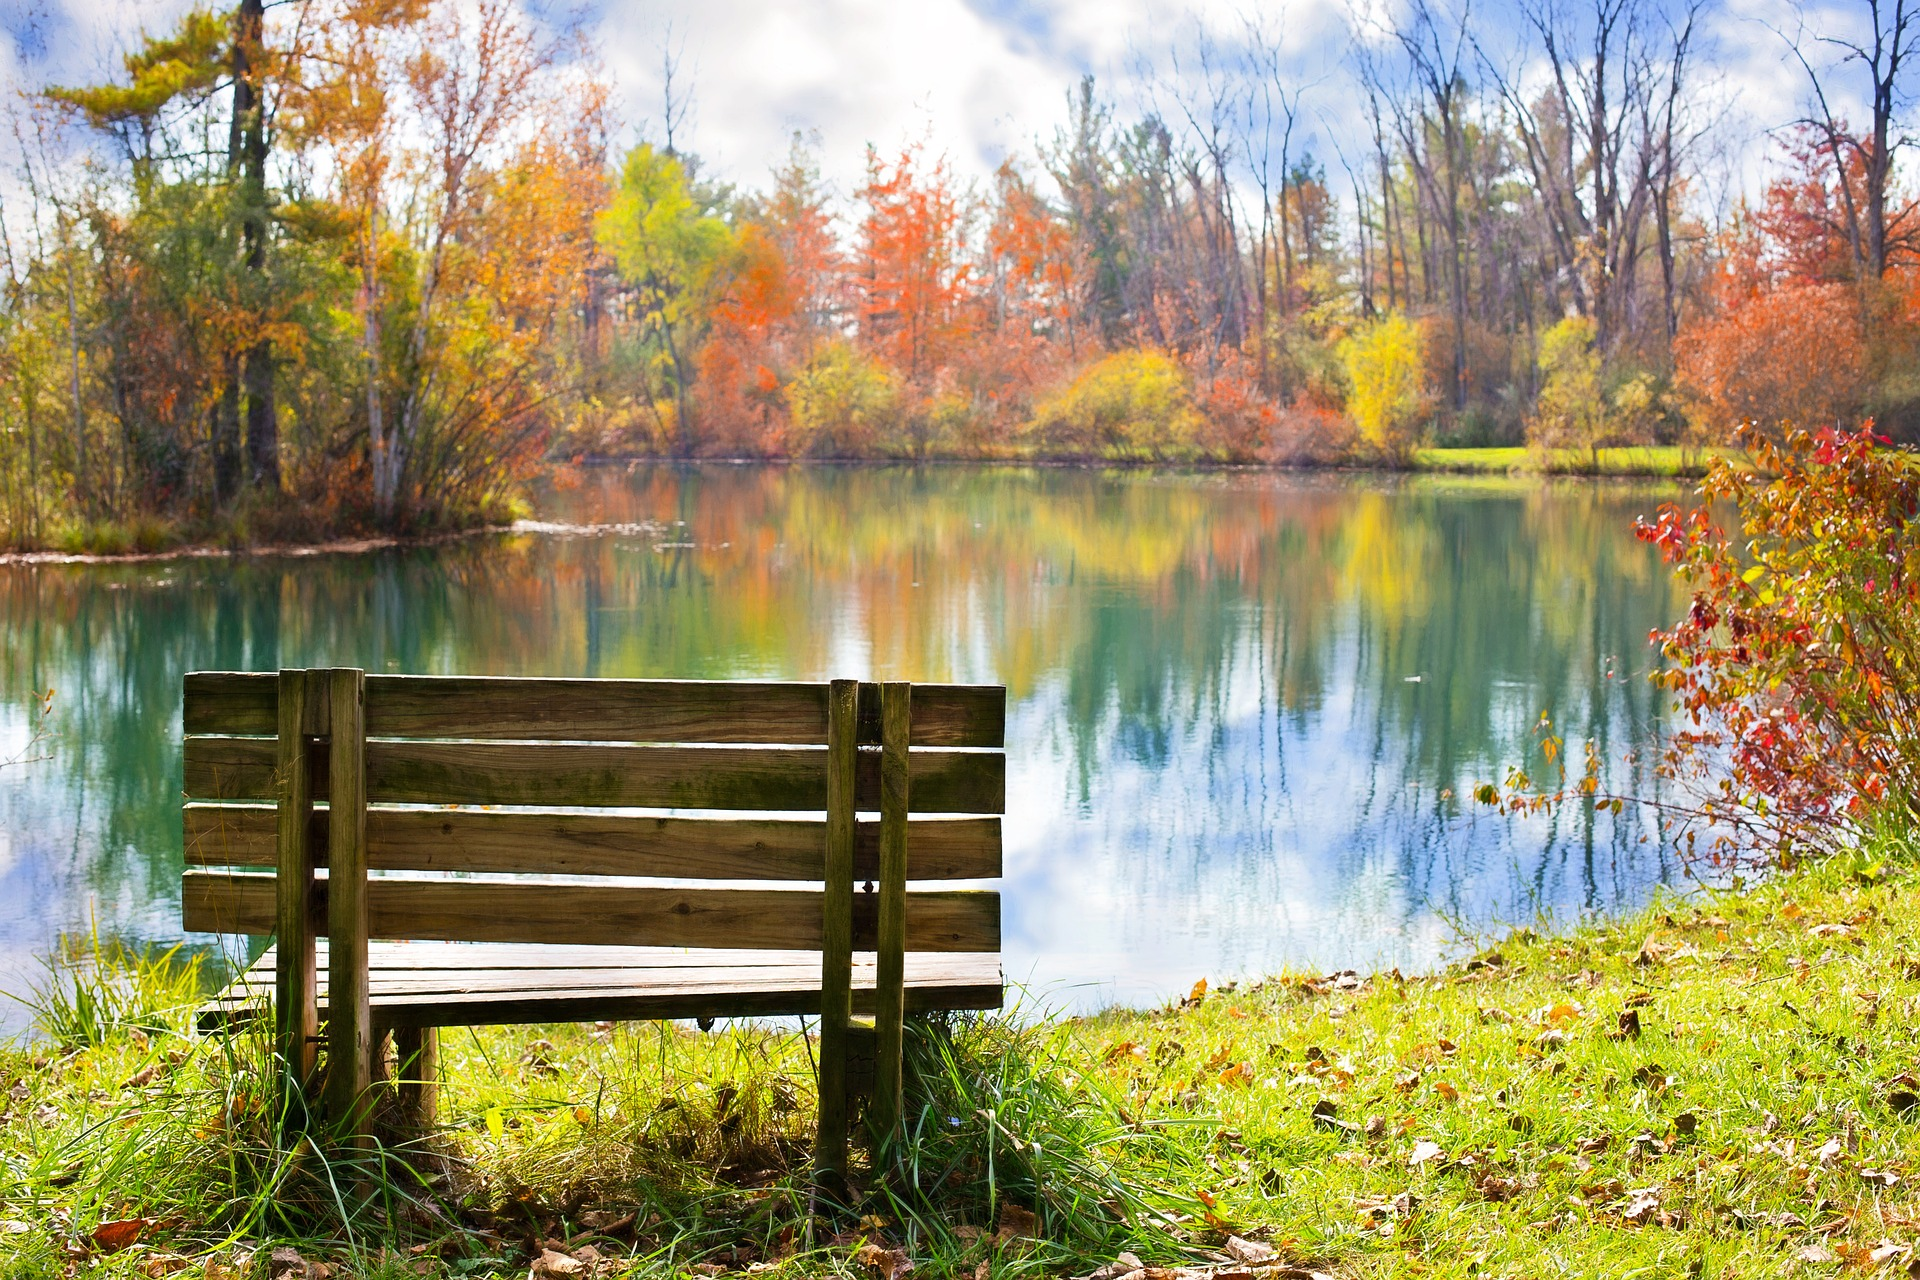 Image of a wood bench next to a lake